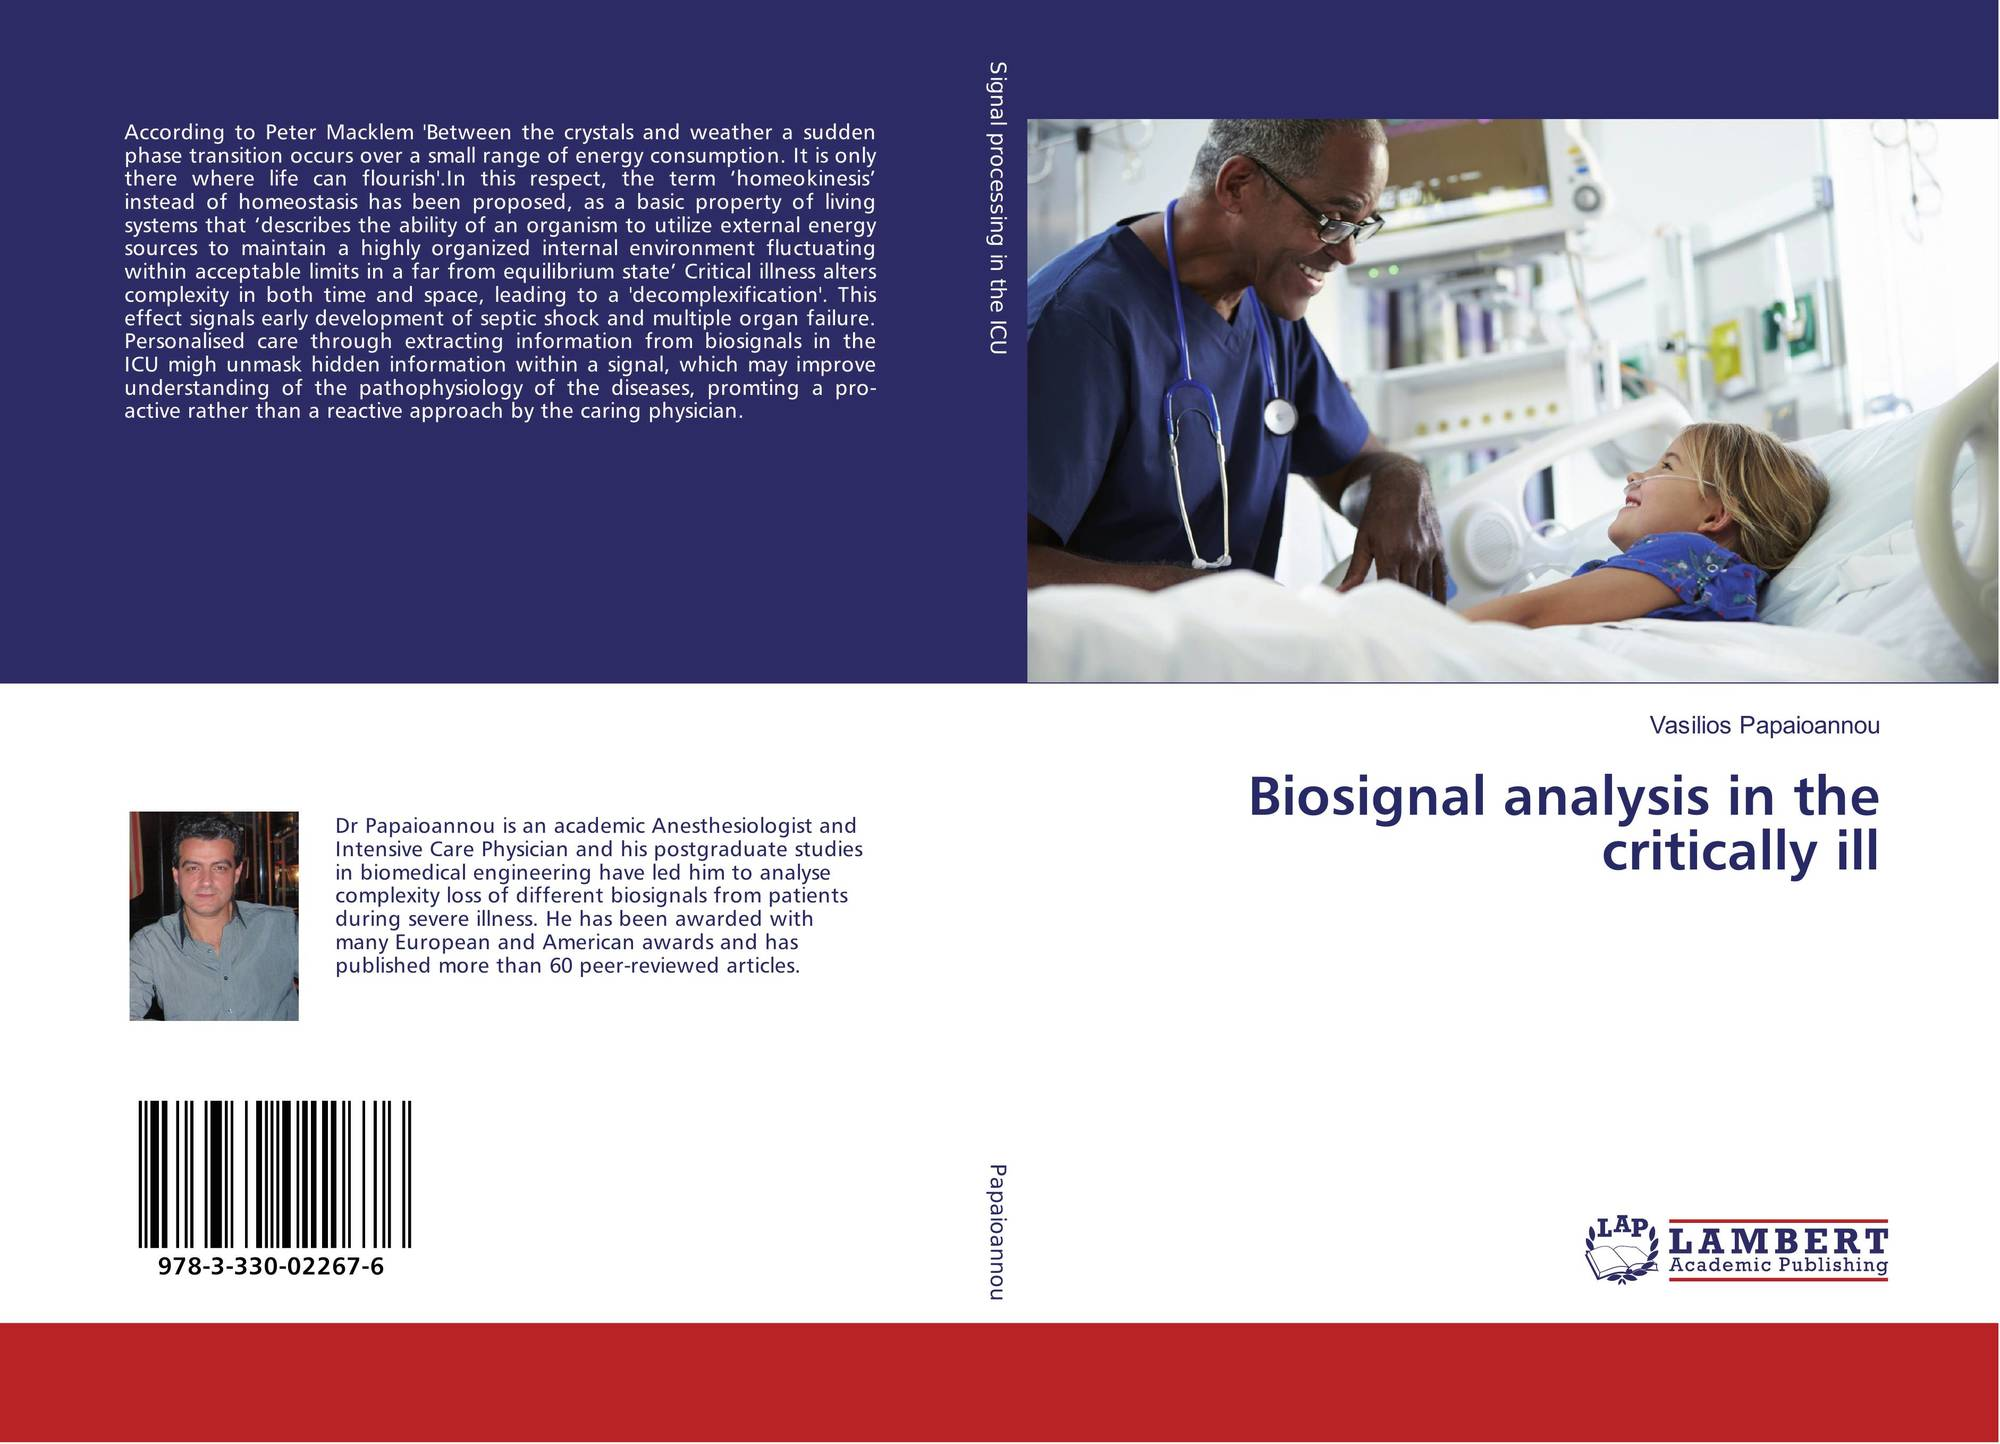 reliability analysis in ship's critical machinery The analysis is large undertaking, so break it down into a series of sessions, with each session focusing on a specific area of the operation record the criticality rating in the equipment records for use in planning, scheduling and other activities.